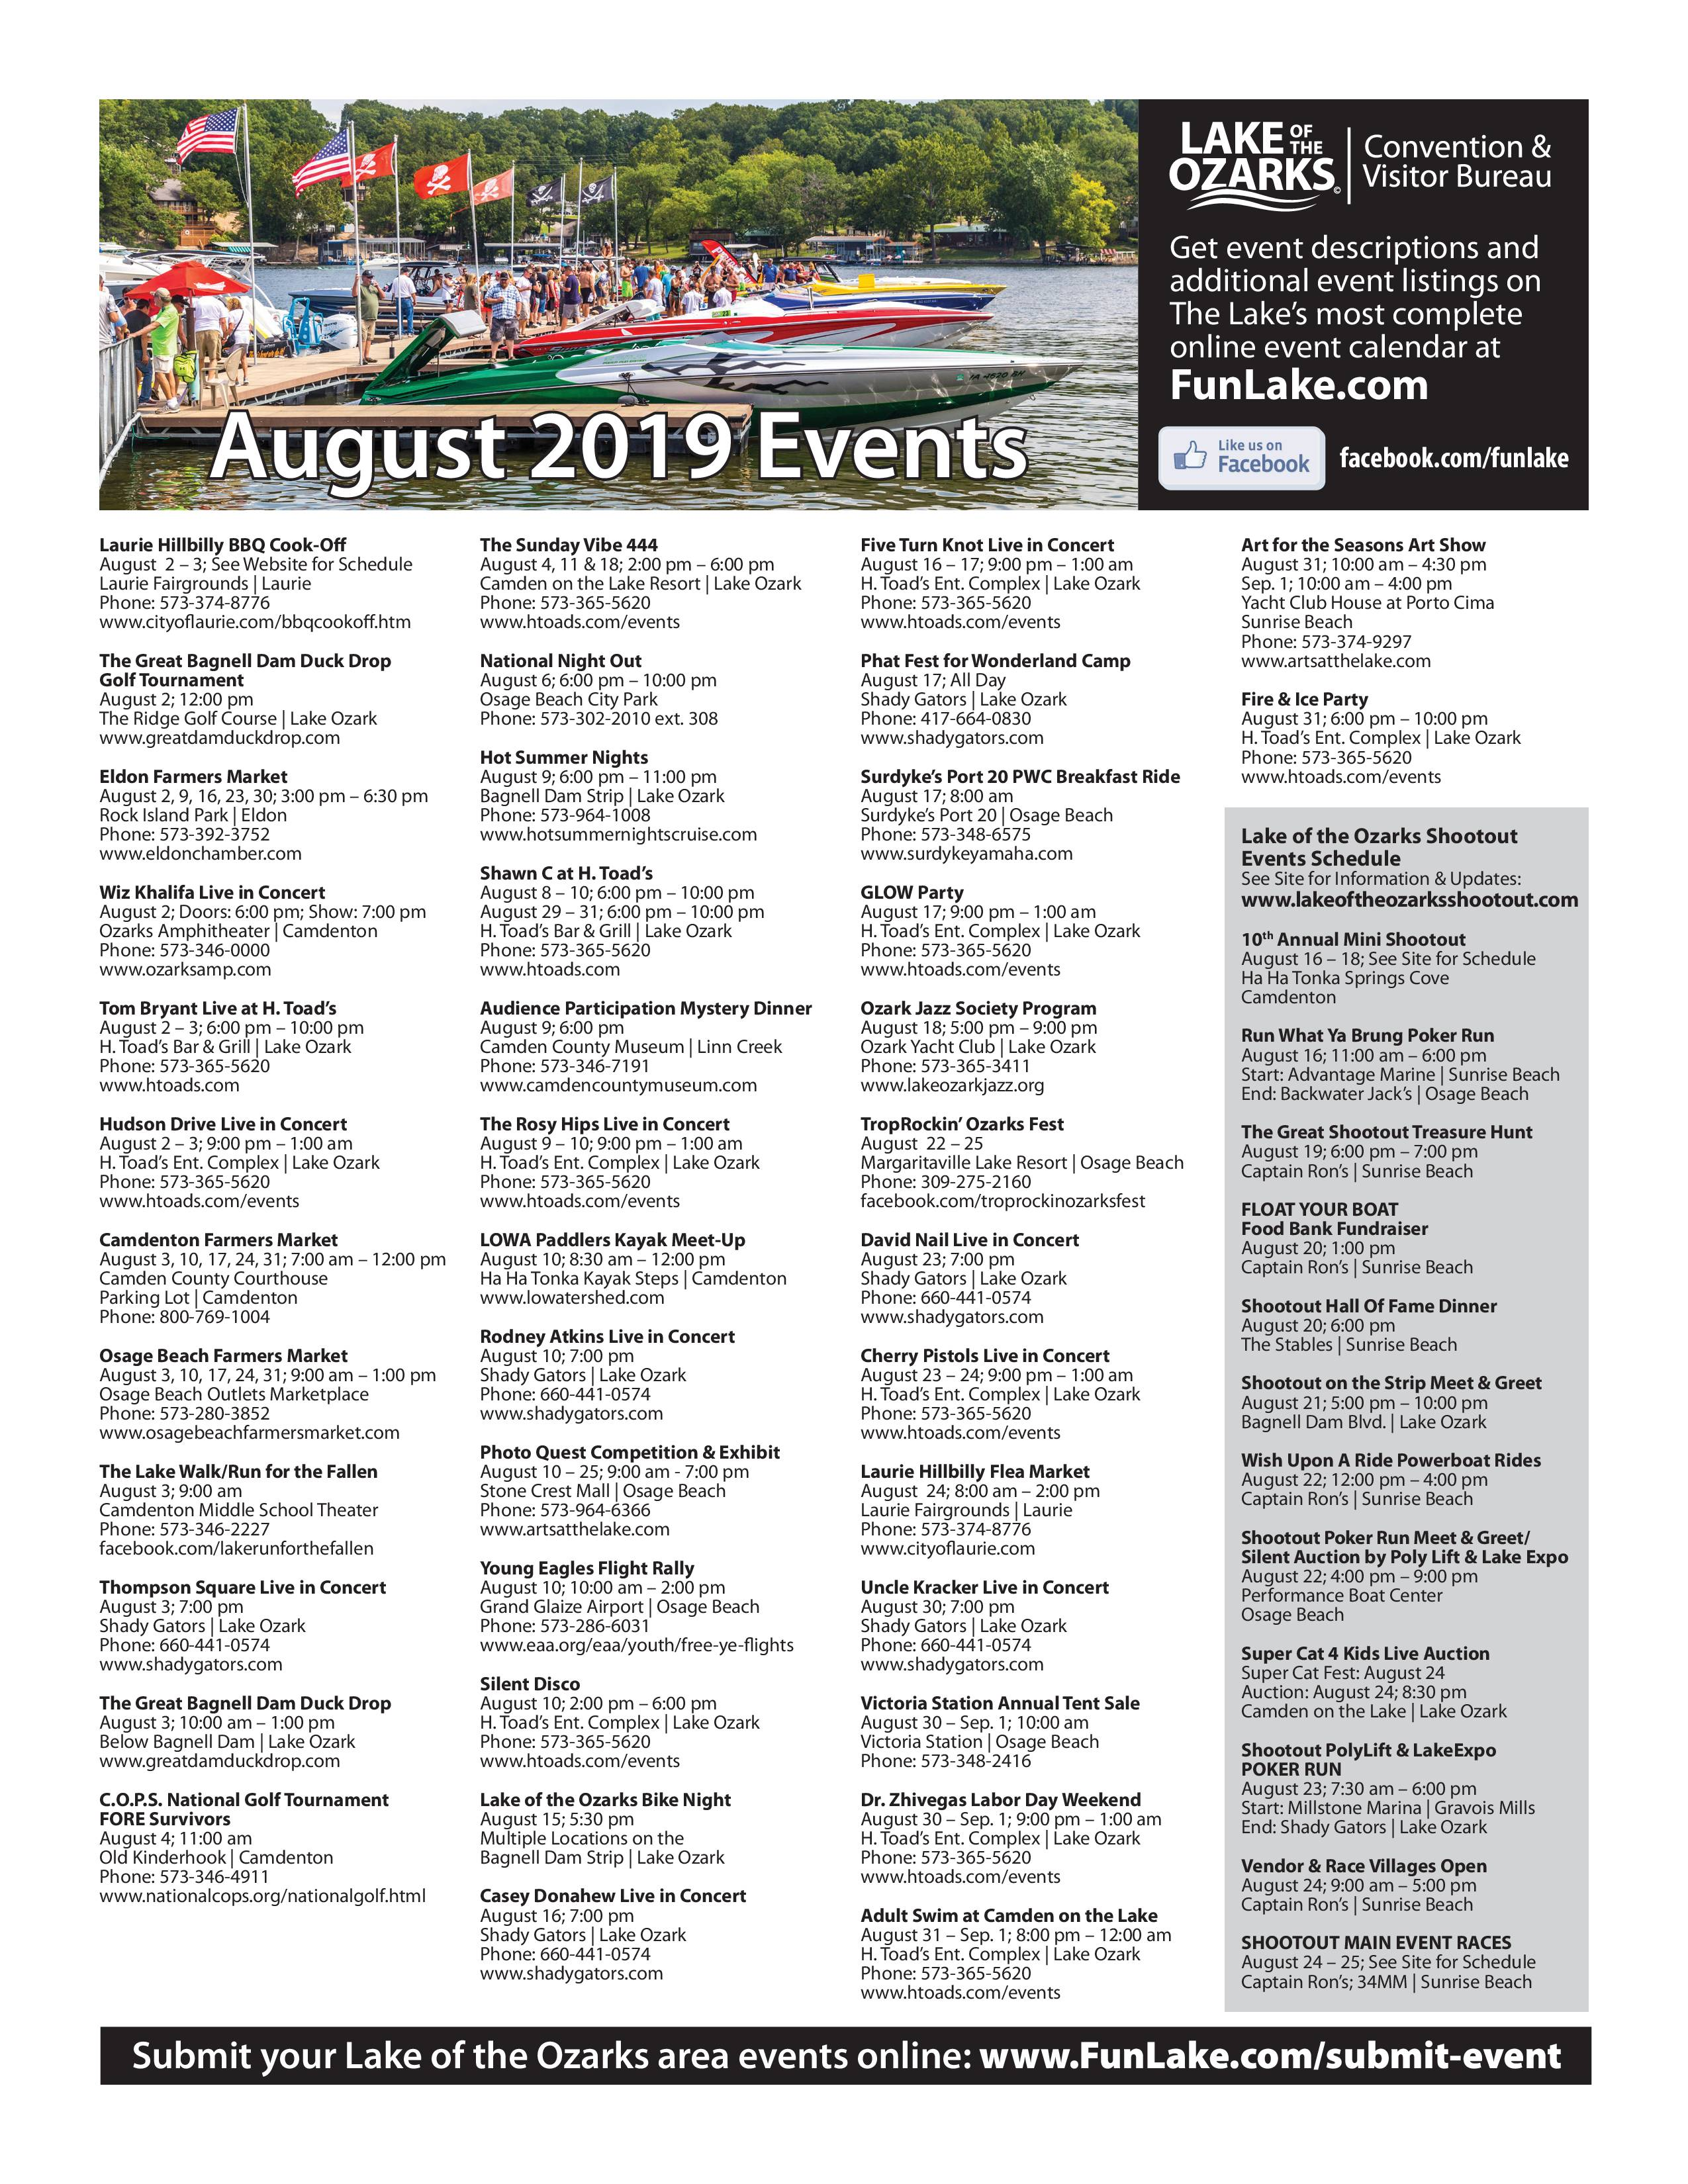 Aug 2019 Lake of the Ozarks Events Calendar